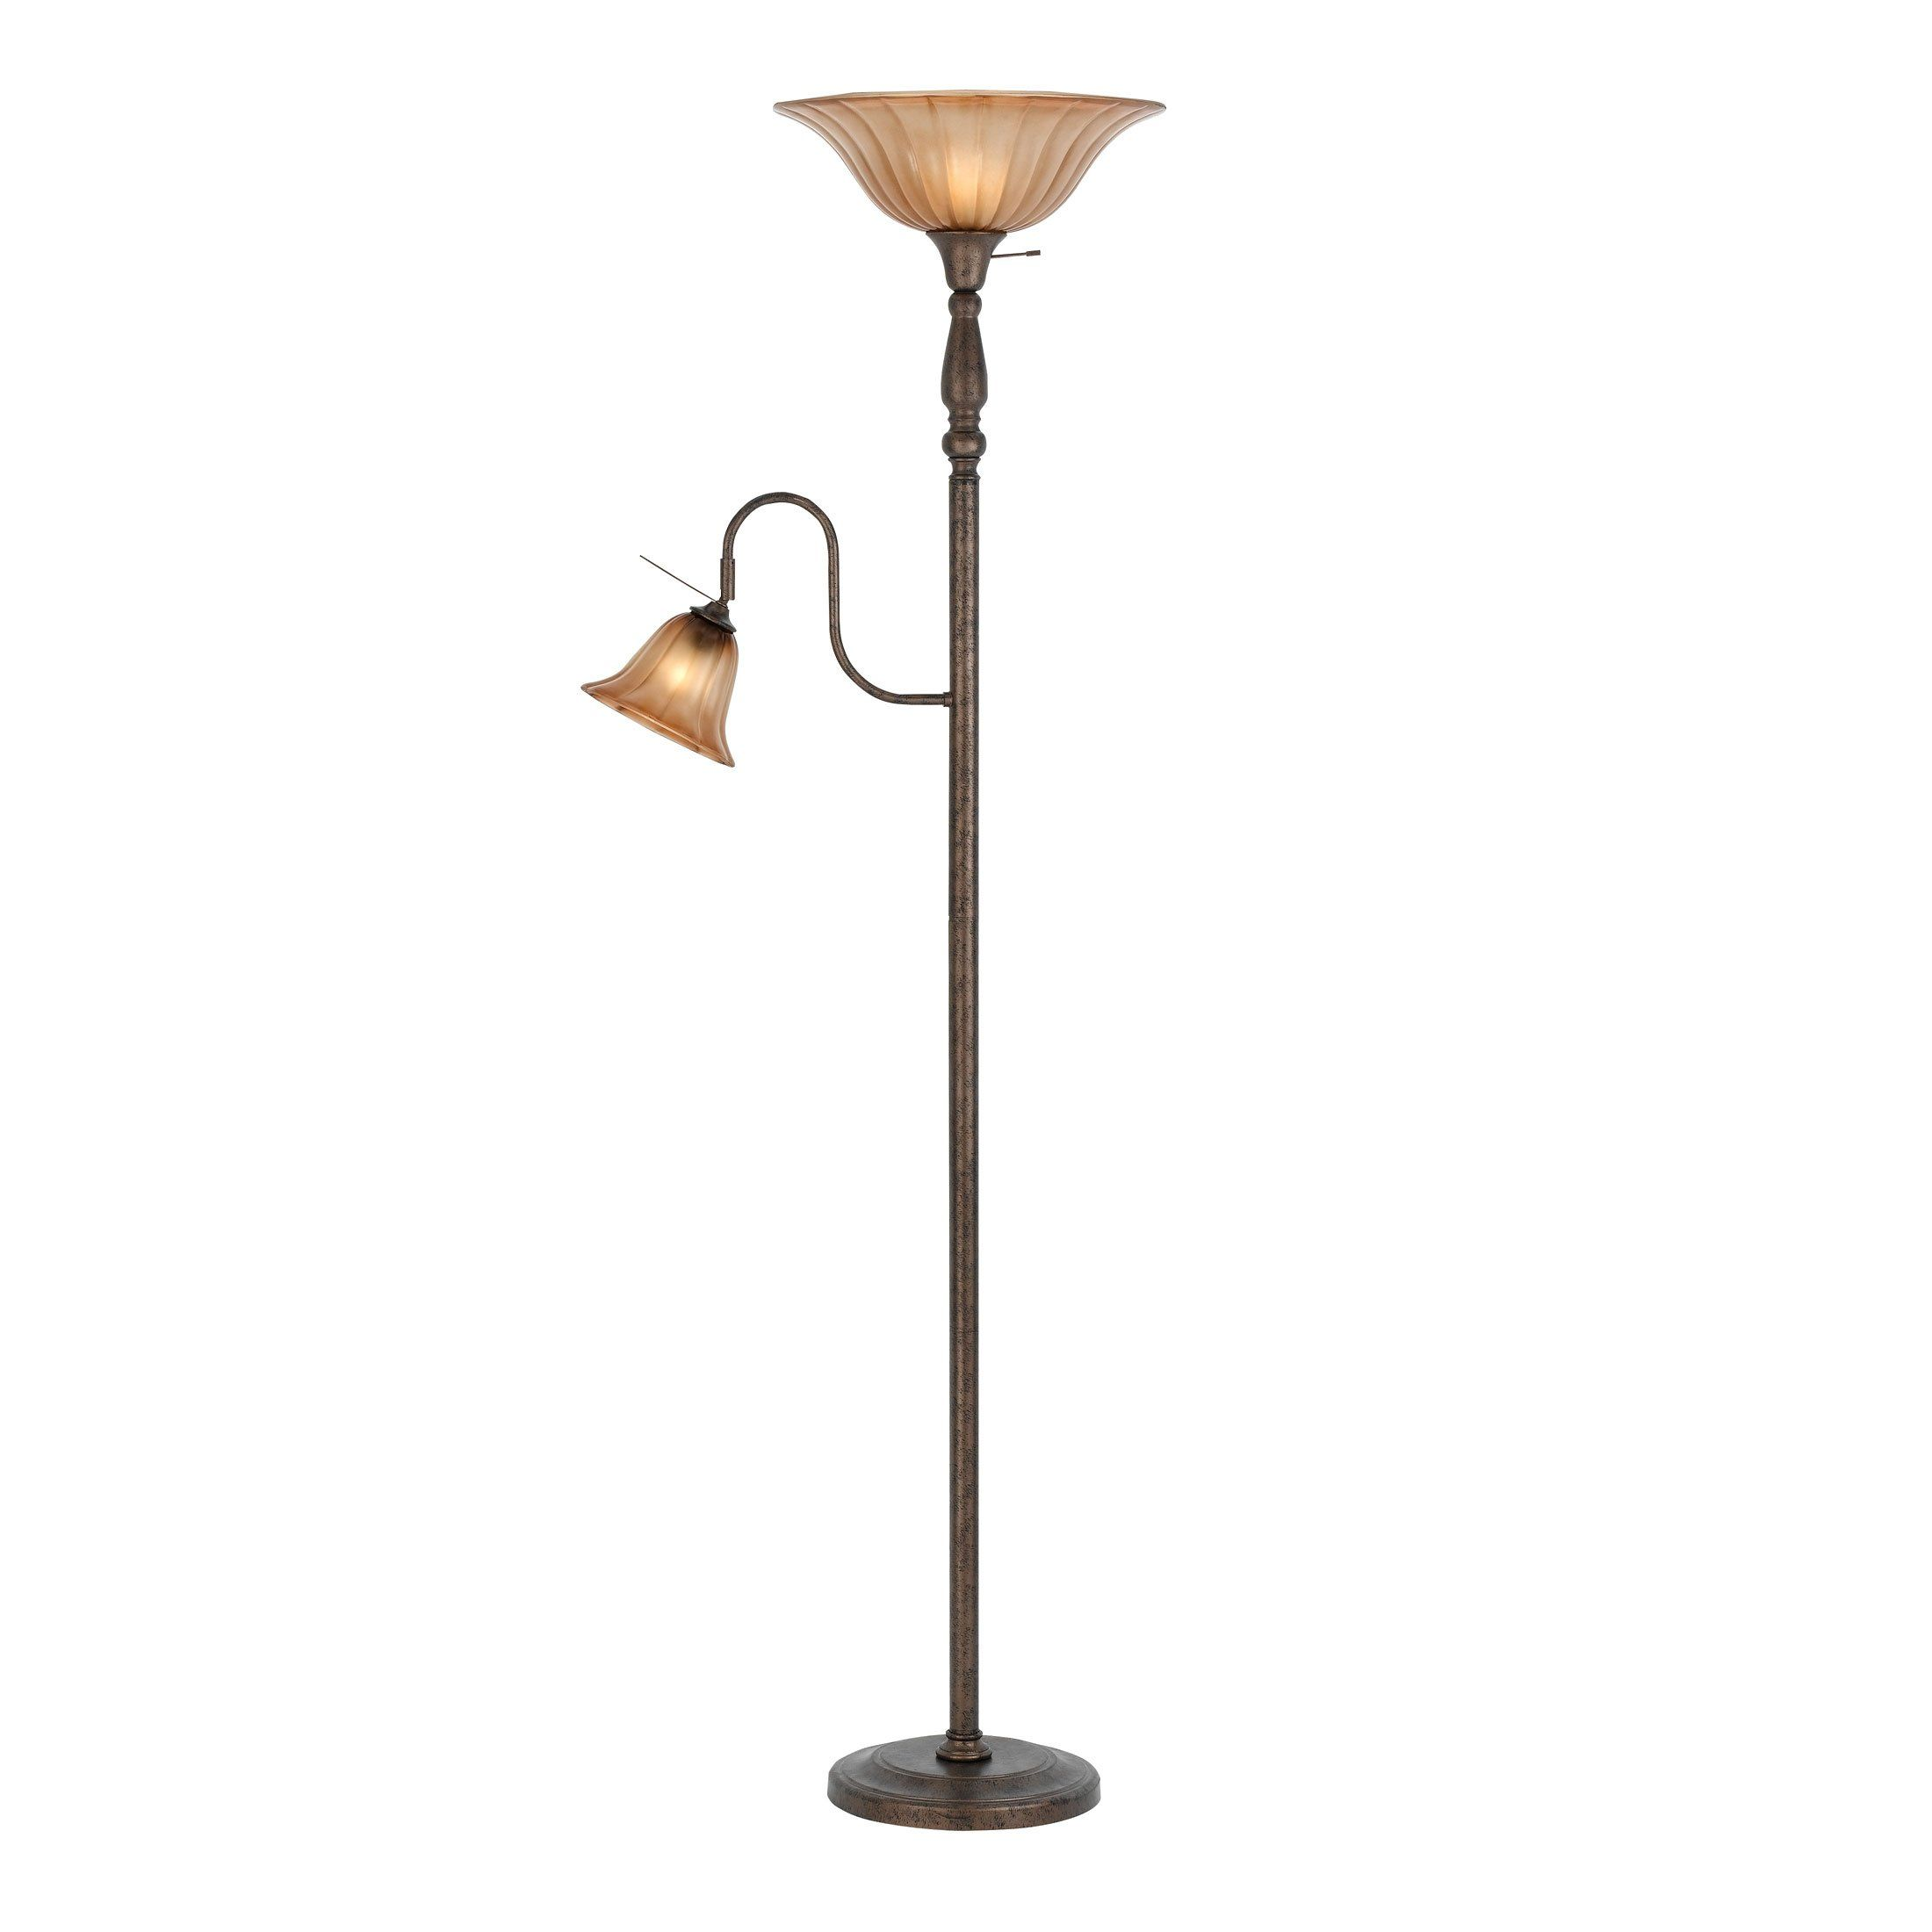 Cal Lighting BO2052RU 2 Light Torchiere Floor Lamp, Rust